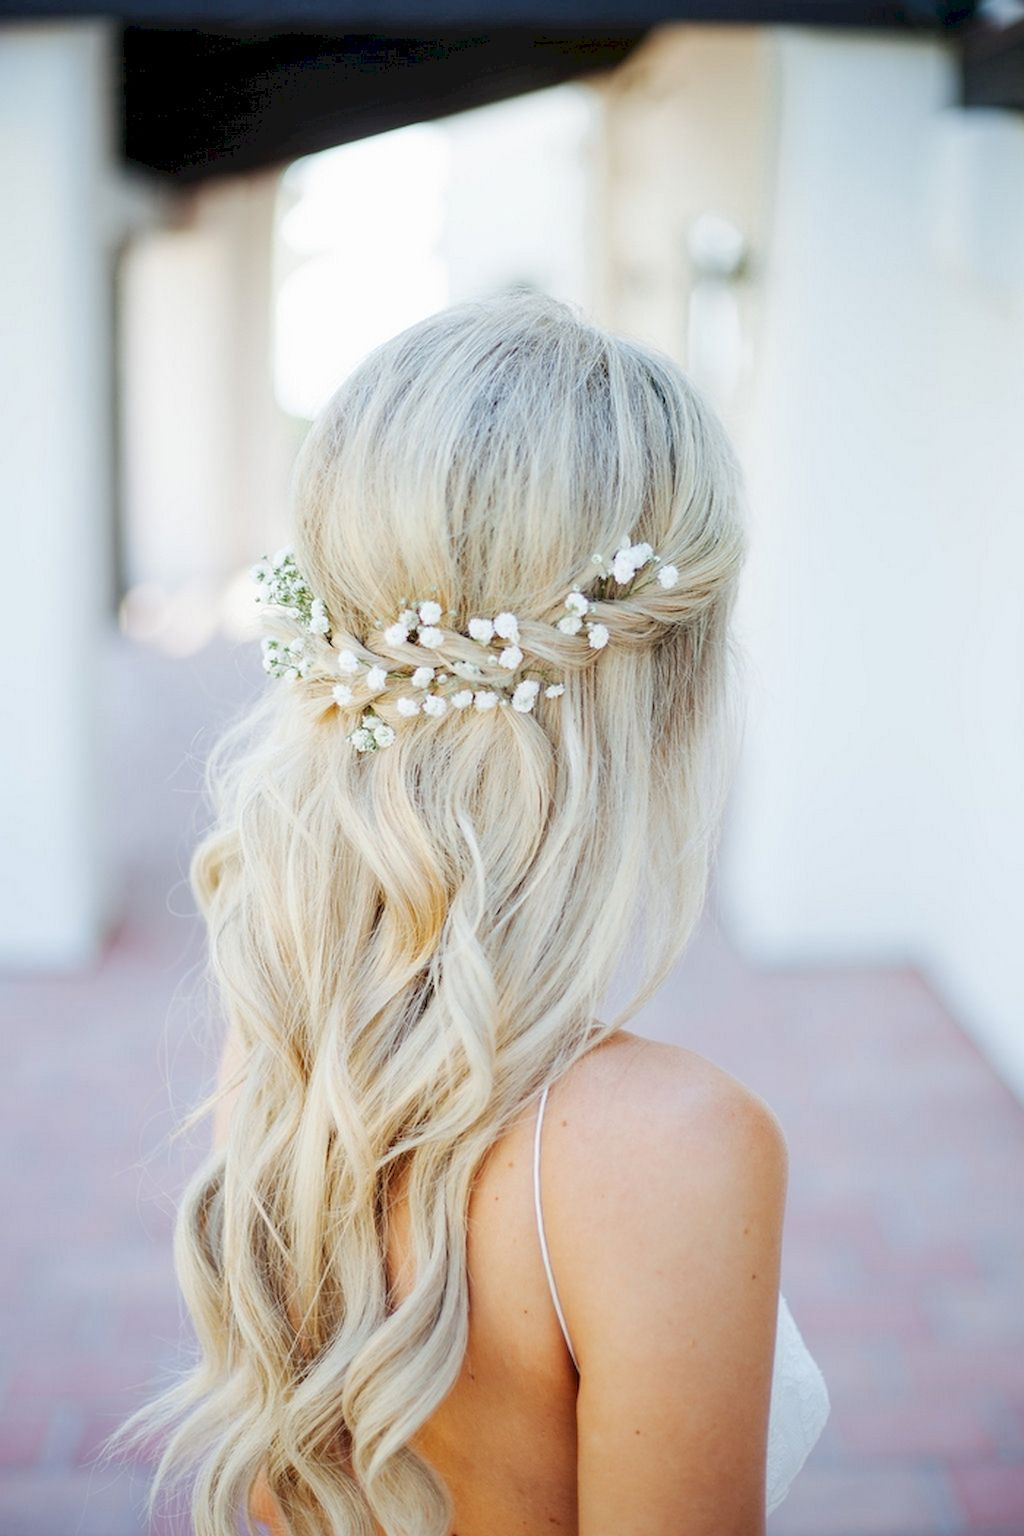 99+ Simple Wedding Hairstyles for Every Length | Simple wedding ...